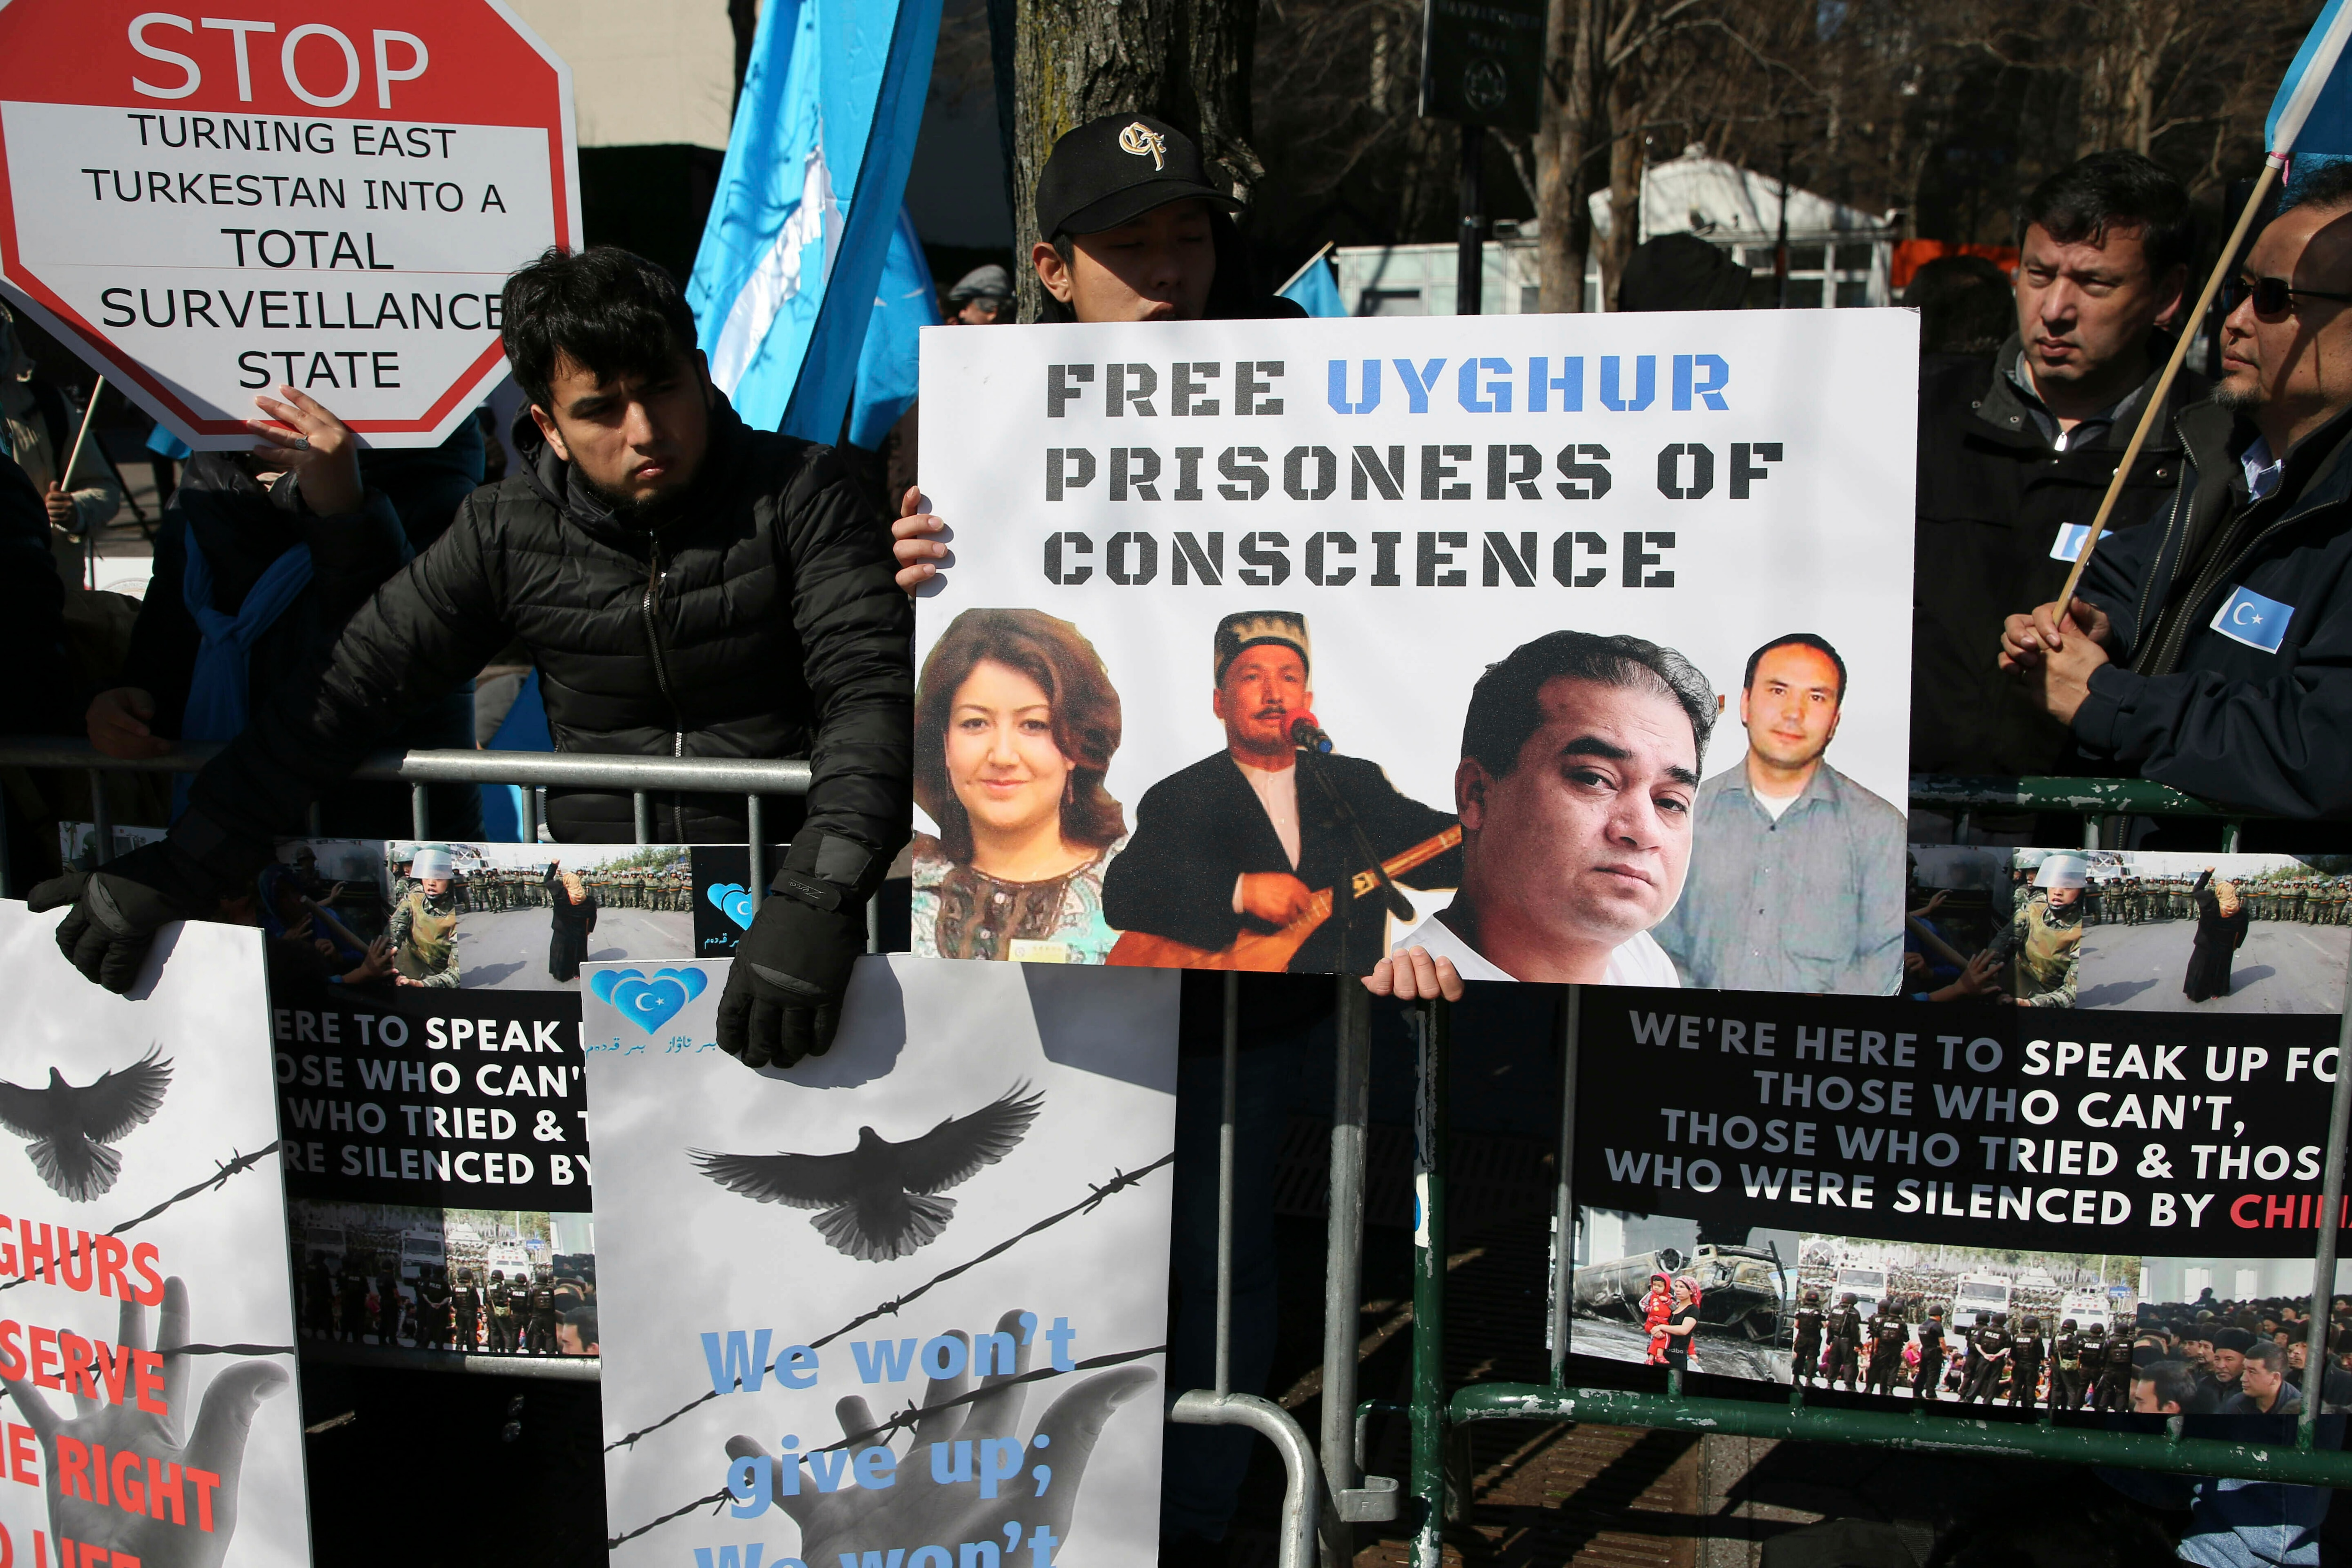 Uighurs rally across the street from United Nations headquarters in New York.